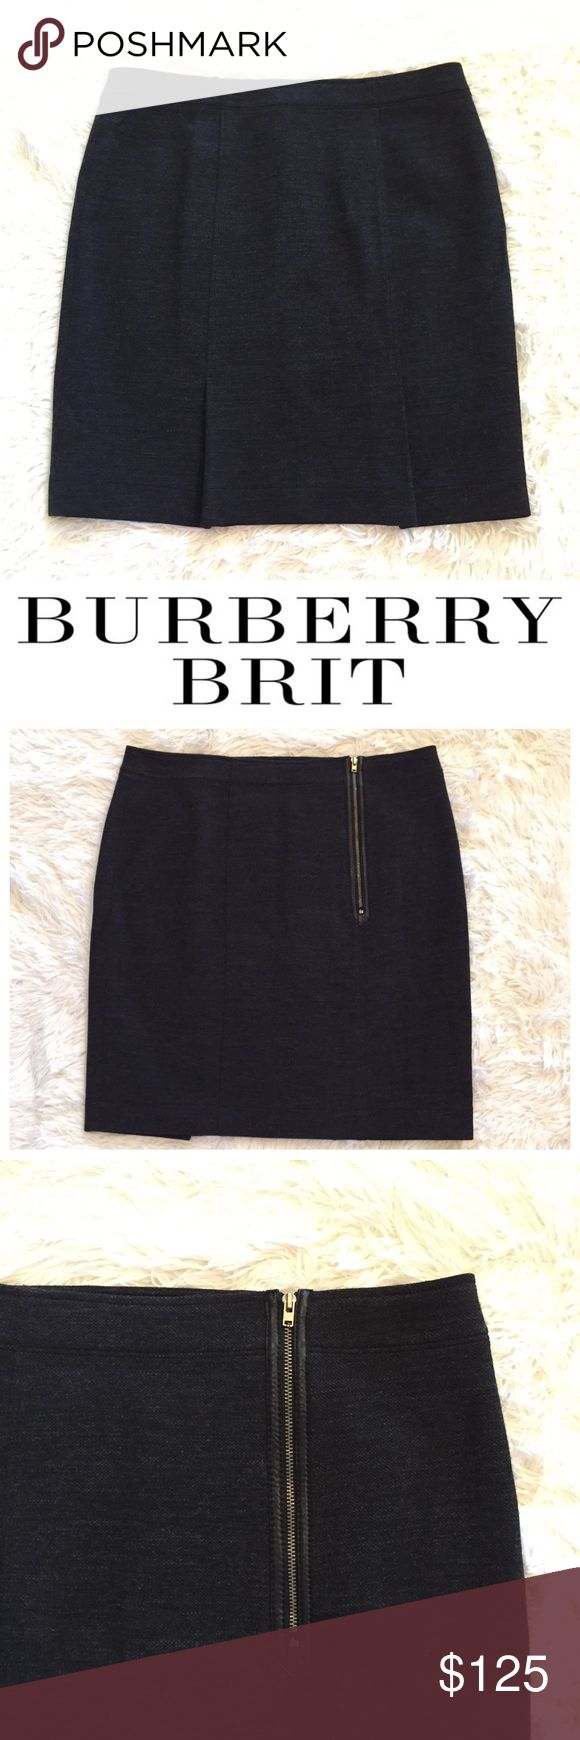 """Burberry Gray Wool Pencil Skirt Burberry Brit dark gray pencil skirt. Virgin wool/cotton. Fully lined. Off-center front zipper with leather trim. 2 back seams with inverted pleats. Approx. measurements: waist 17"""", hips 20"""", length 19.5"""". Burberry Skirts Pencil"""